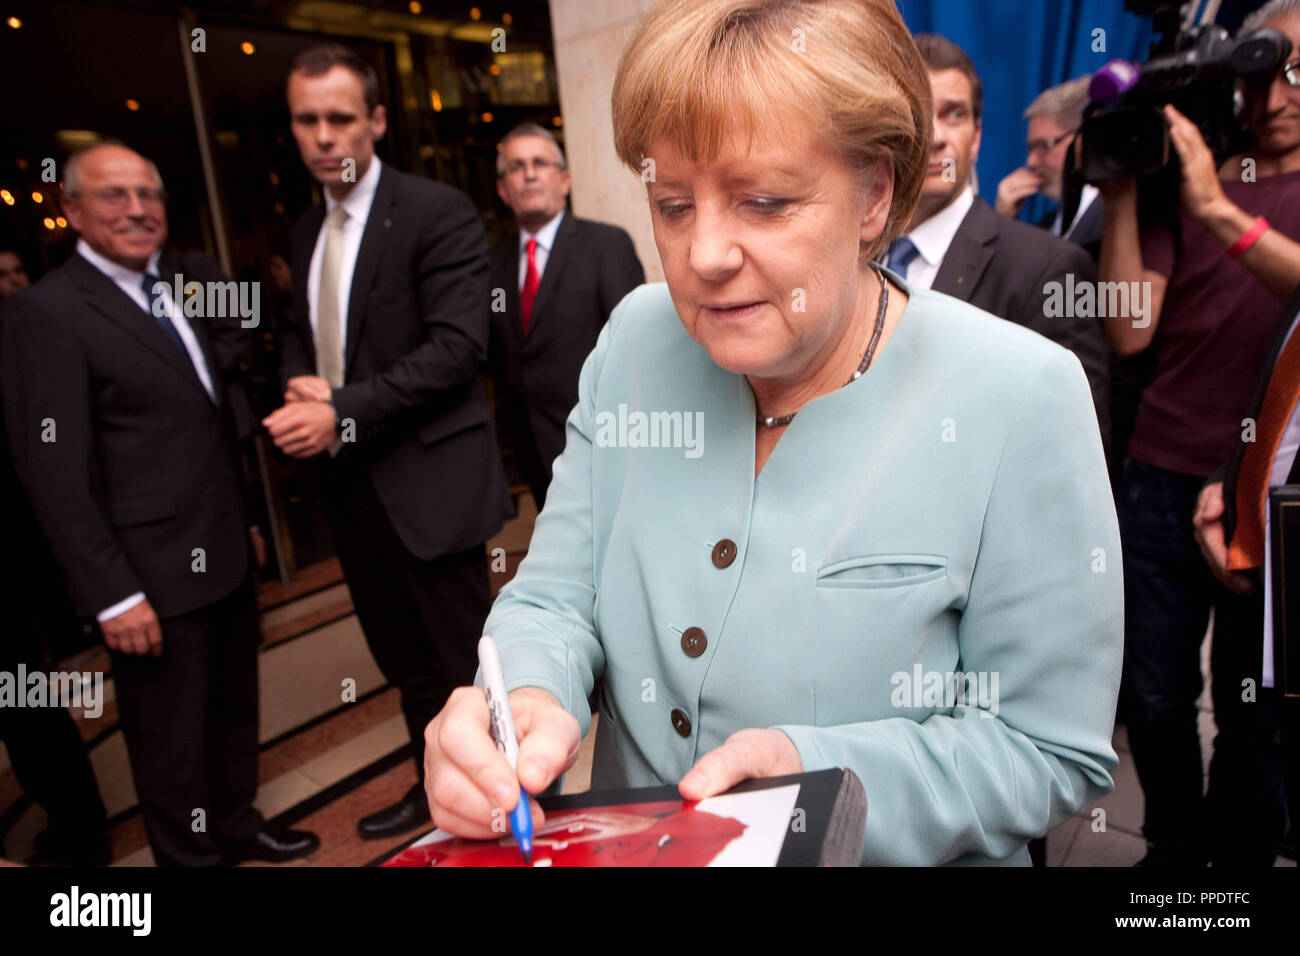 Angela Merkel gives autographs on her arrival at Bayerischer Hof. - Stock Image